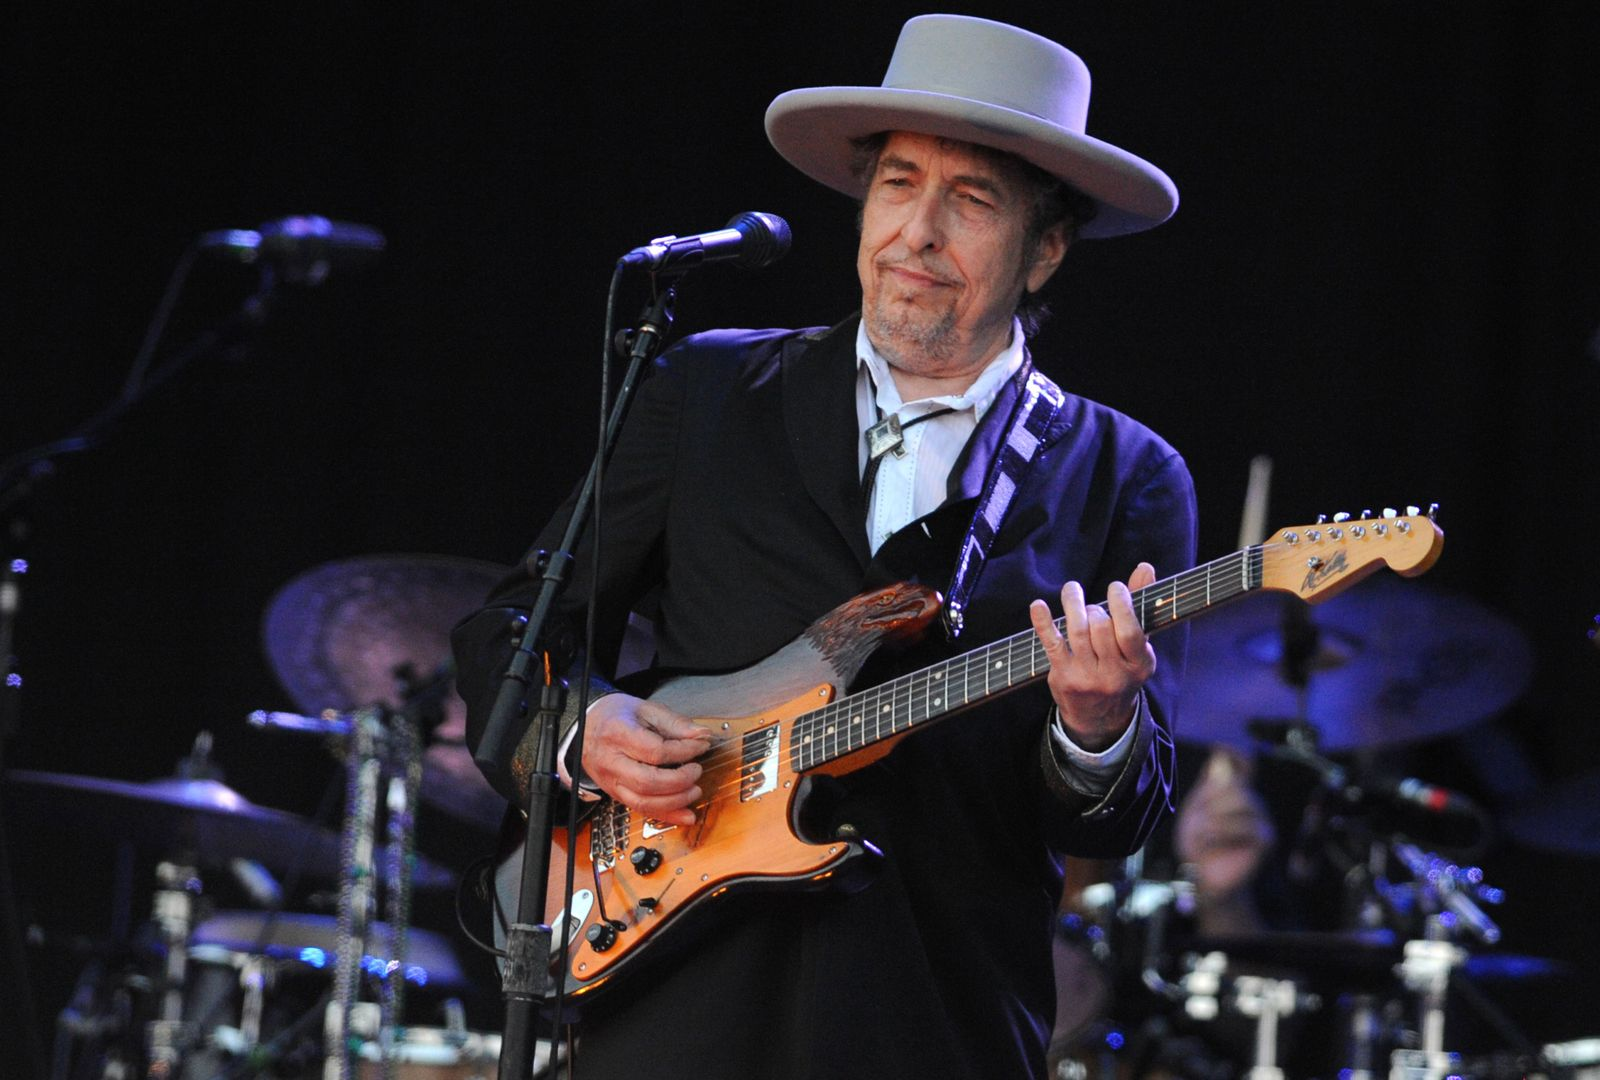 FILES-FRANCE-US-ENTERTAINMENT-MUSIC-BOBDYLAN